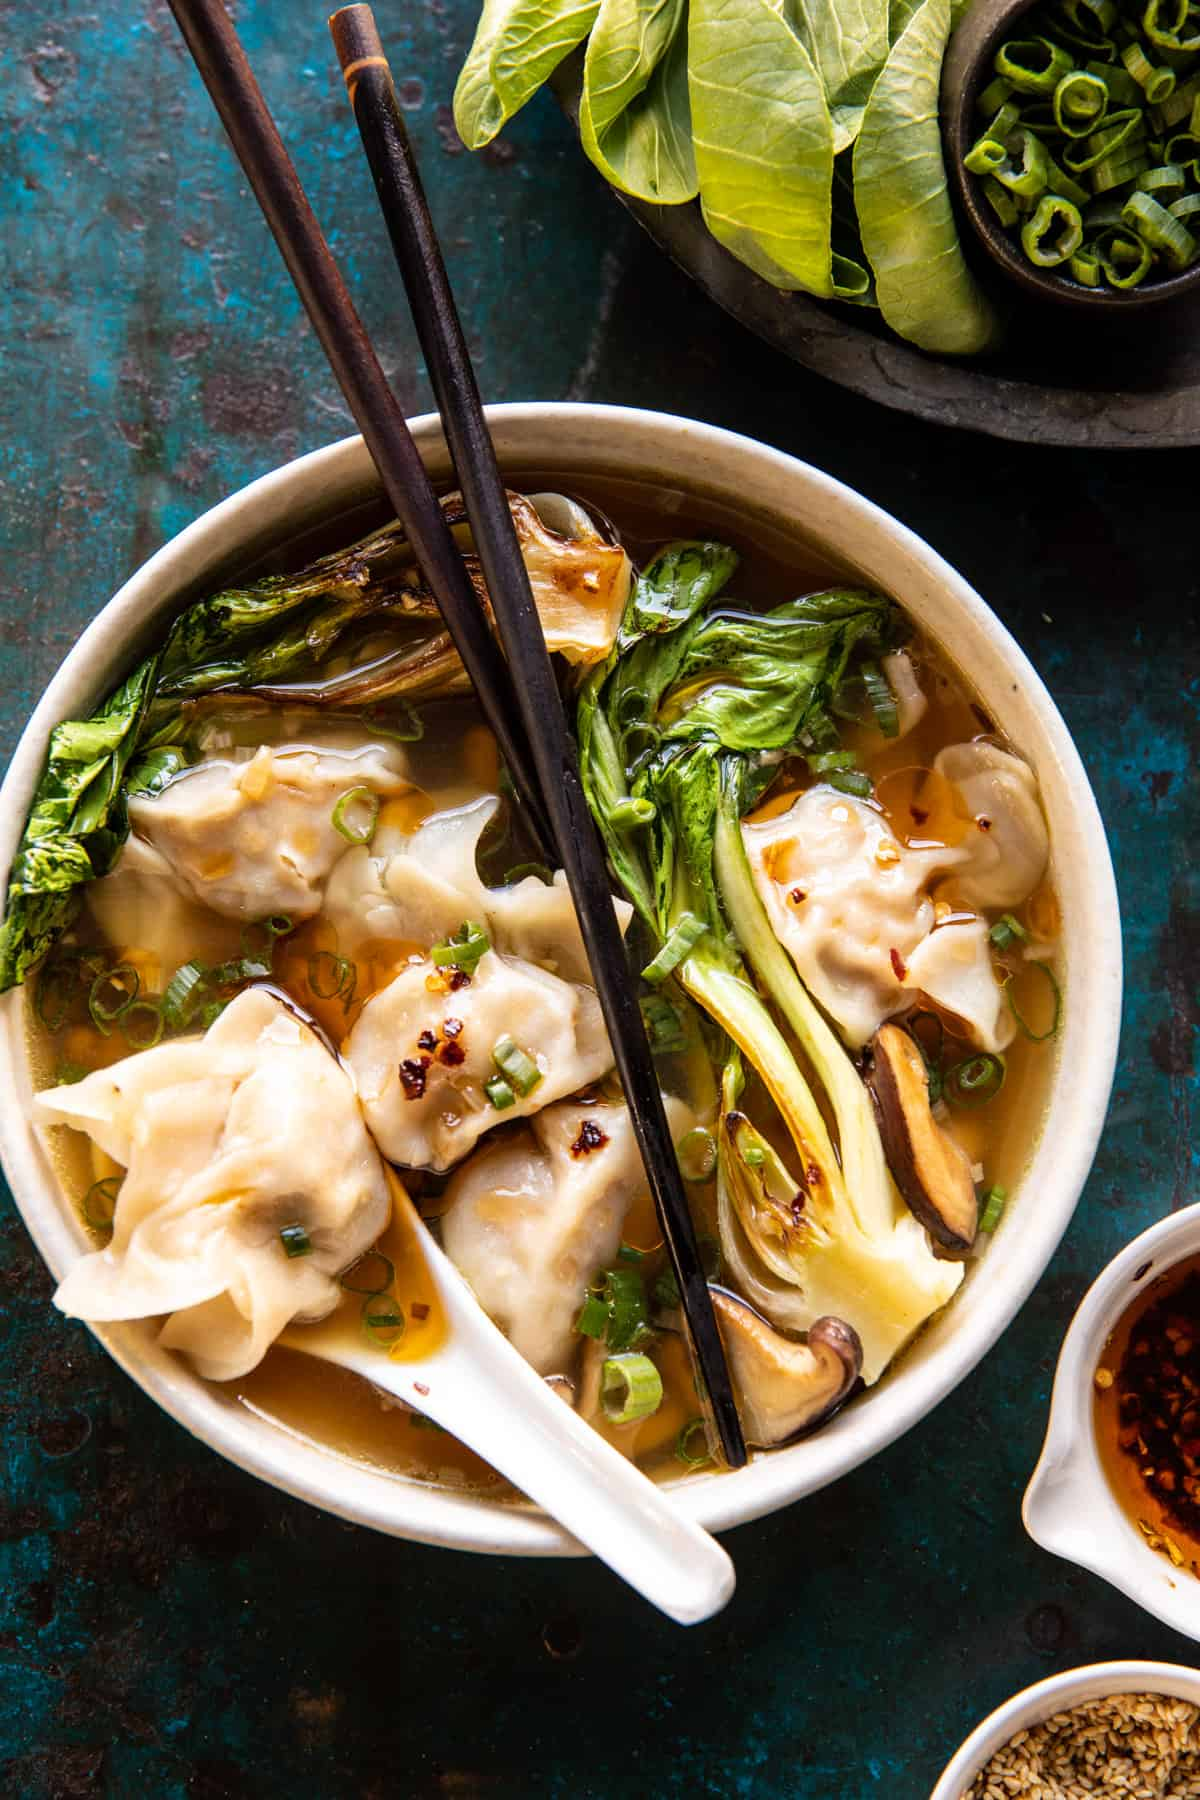 25 Minute Wonton Soup with Sesame Chili Oil